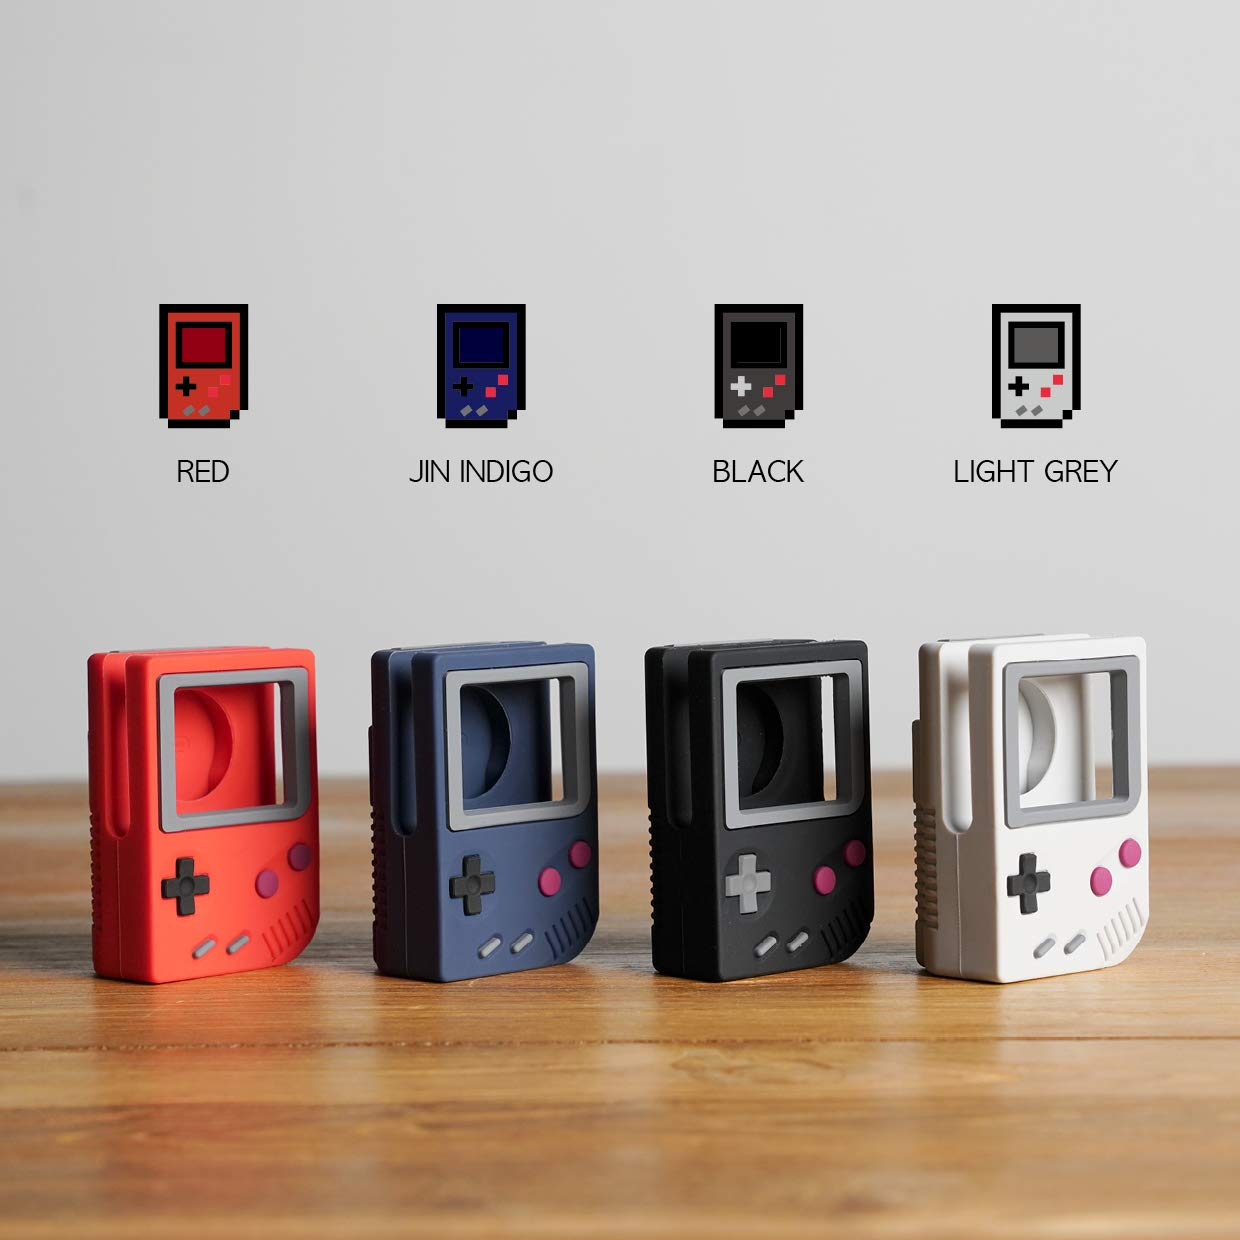 Elago-W5-Game-Boy-Stand-Colors.jpg